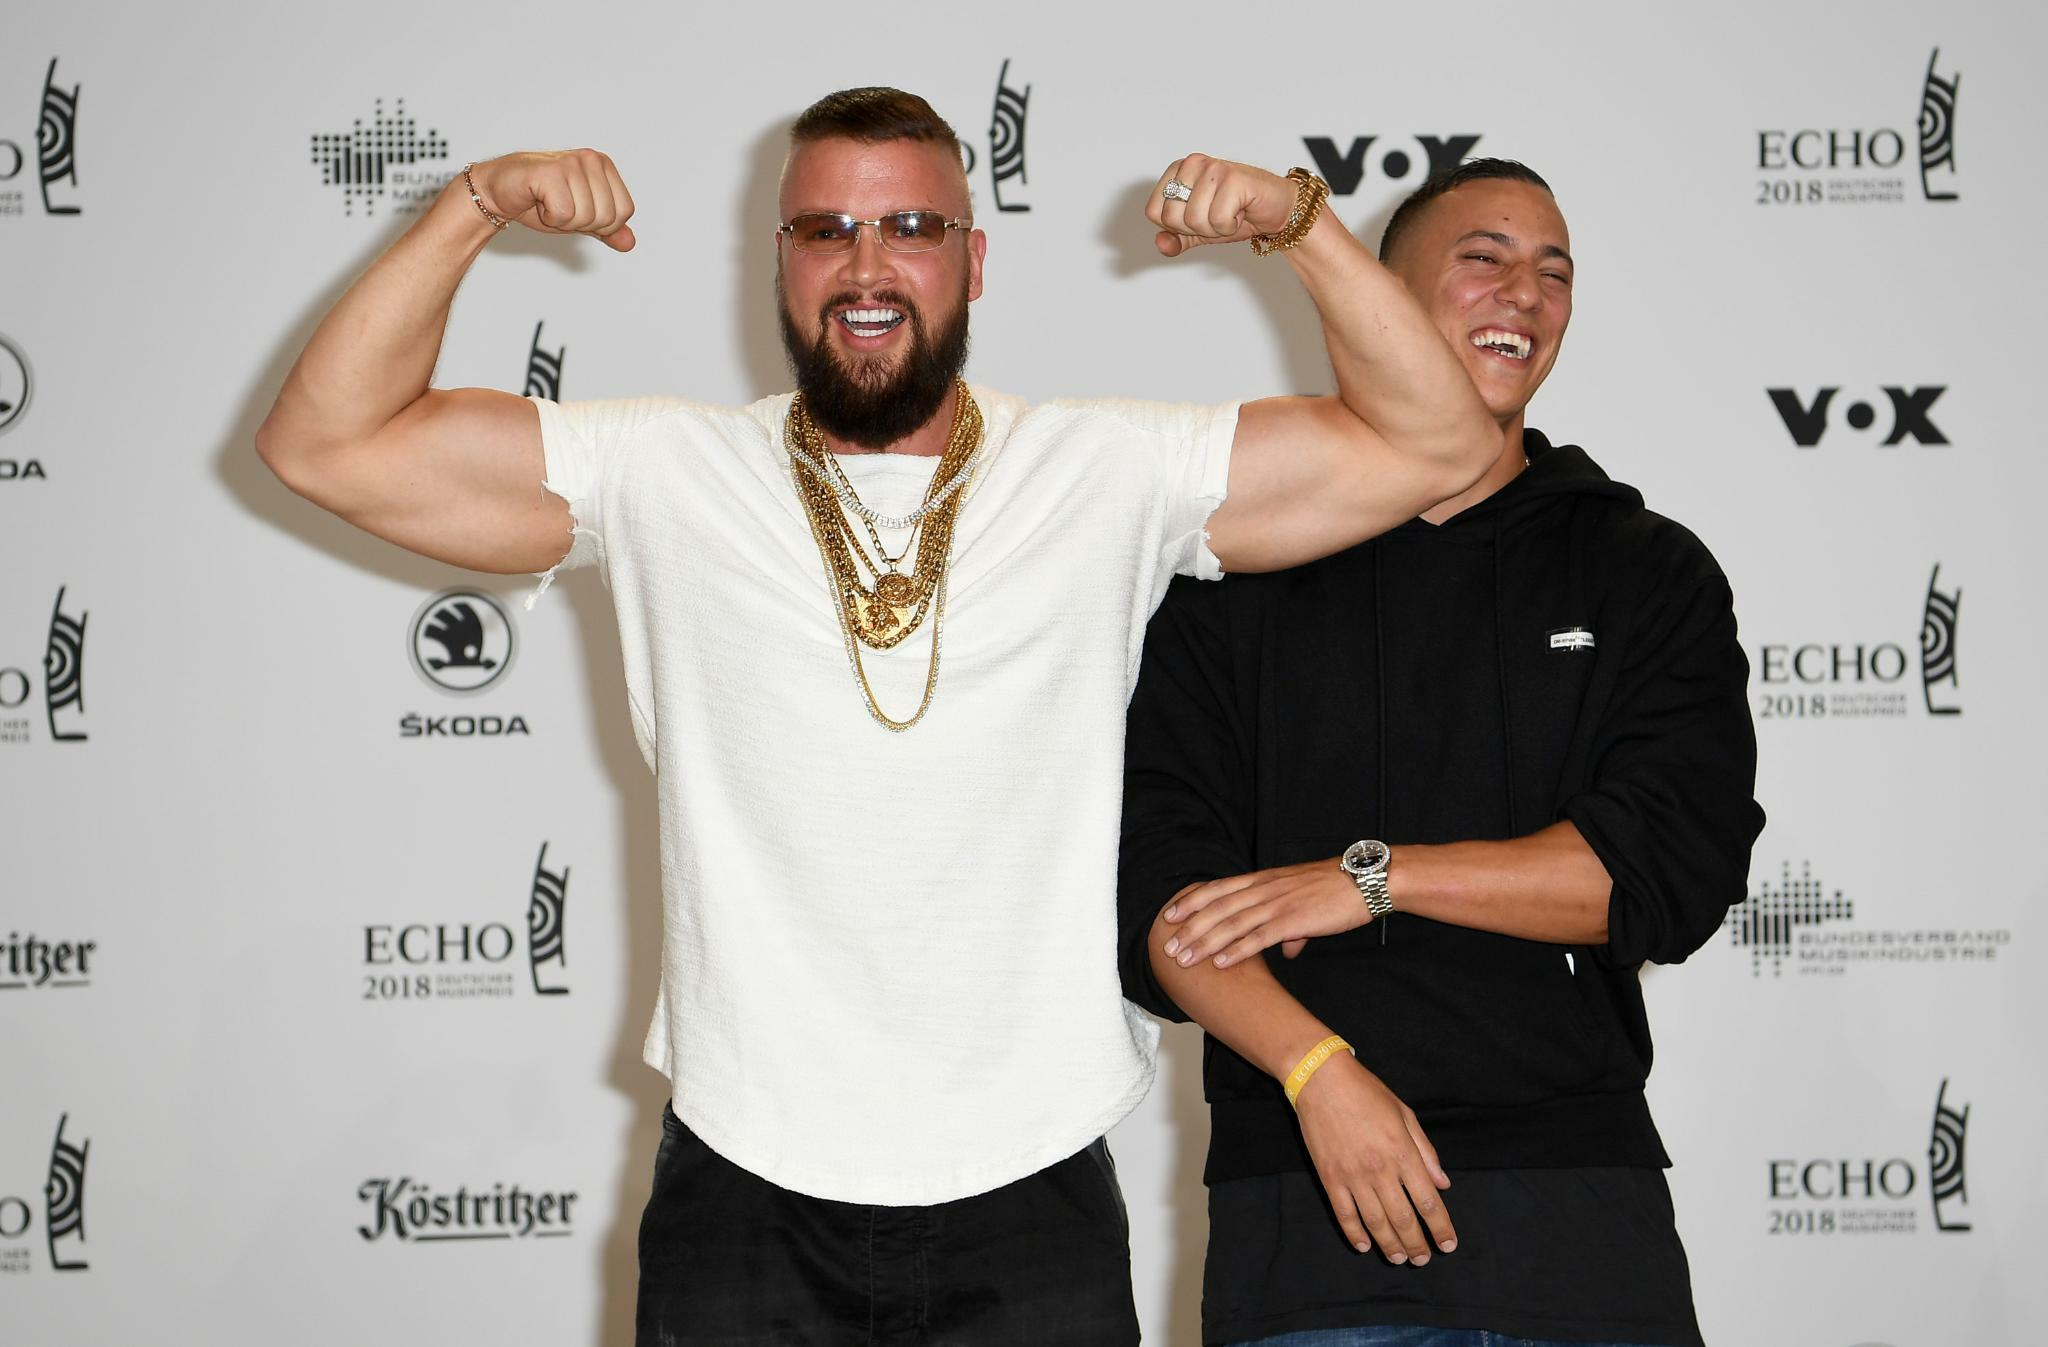 farid bang und kollegah erster auftritt der rapper nach dem echo eklat kultur tagesspiegel. Black Bedroom Furniture Sets. Home Design Ideas